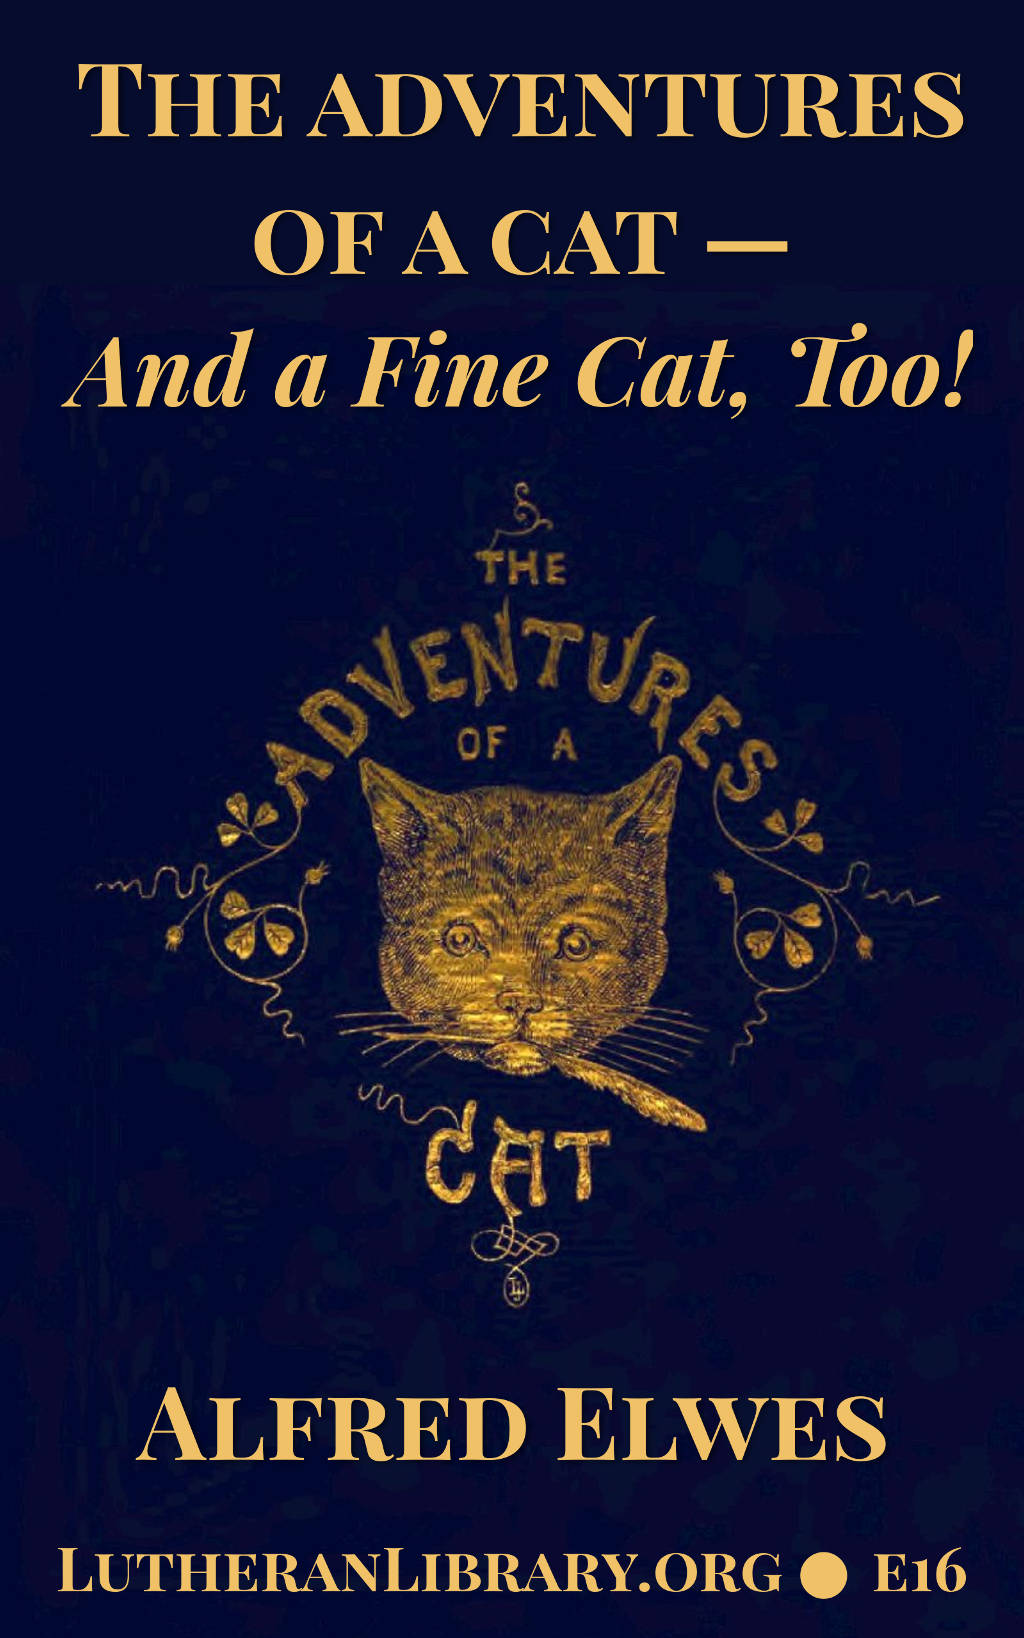 The Adventures of a Cat – And a Fine Cat, Too! by Alfred Elwes